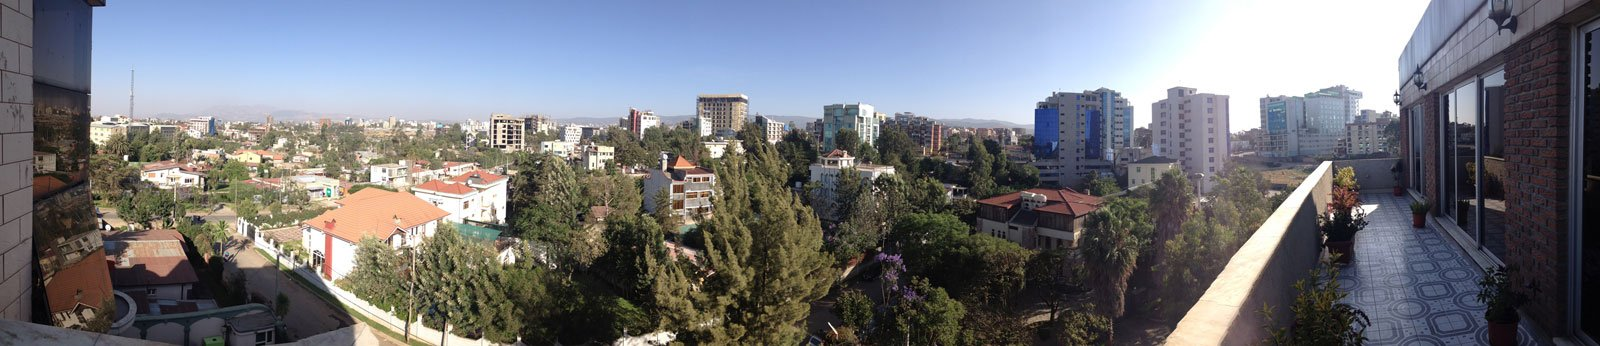 Panoramic view of Addis Ababa from Amy and Mark's hotel.